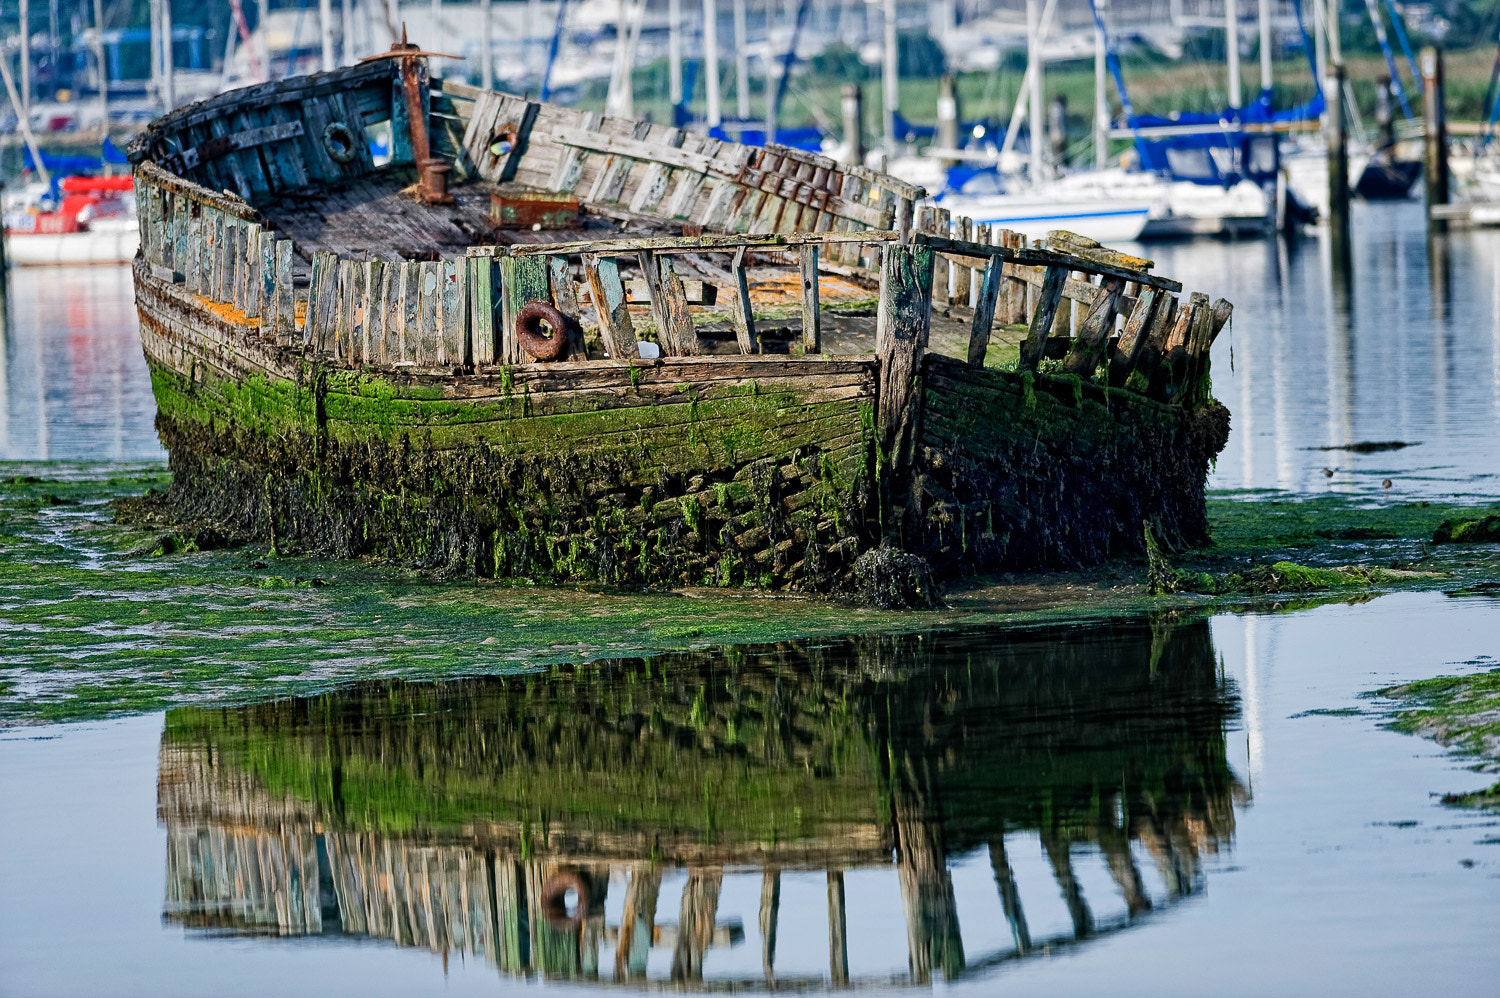 Photograph Wrecked by Paul Todd on 500px